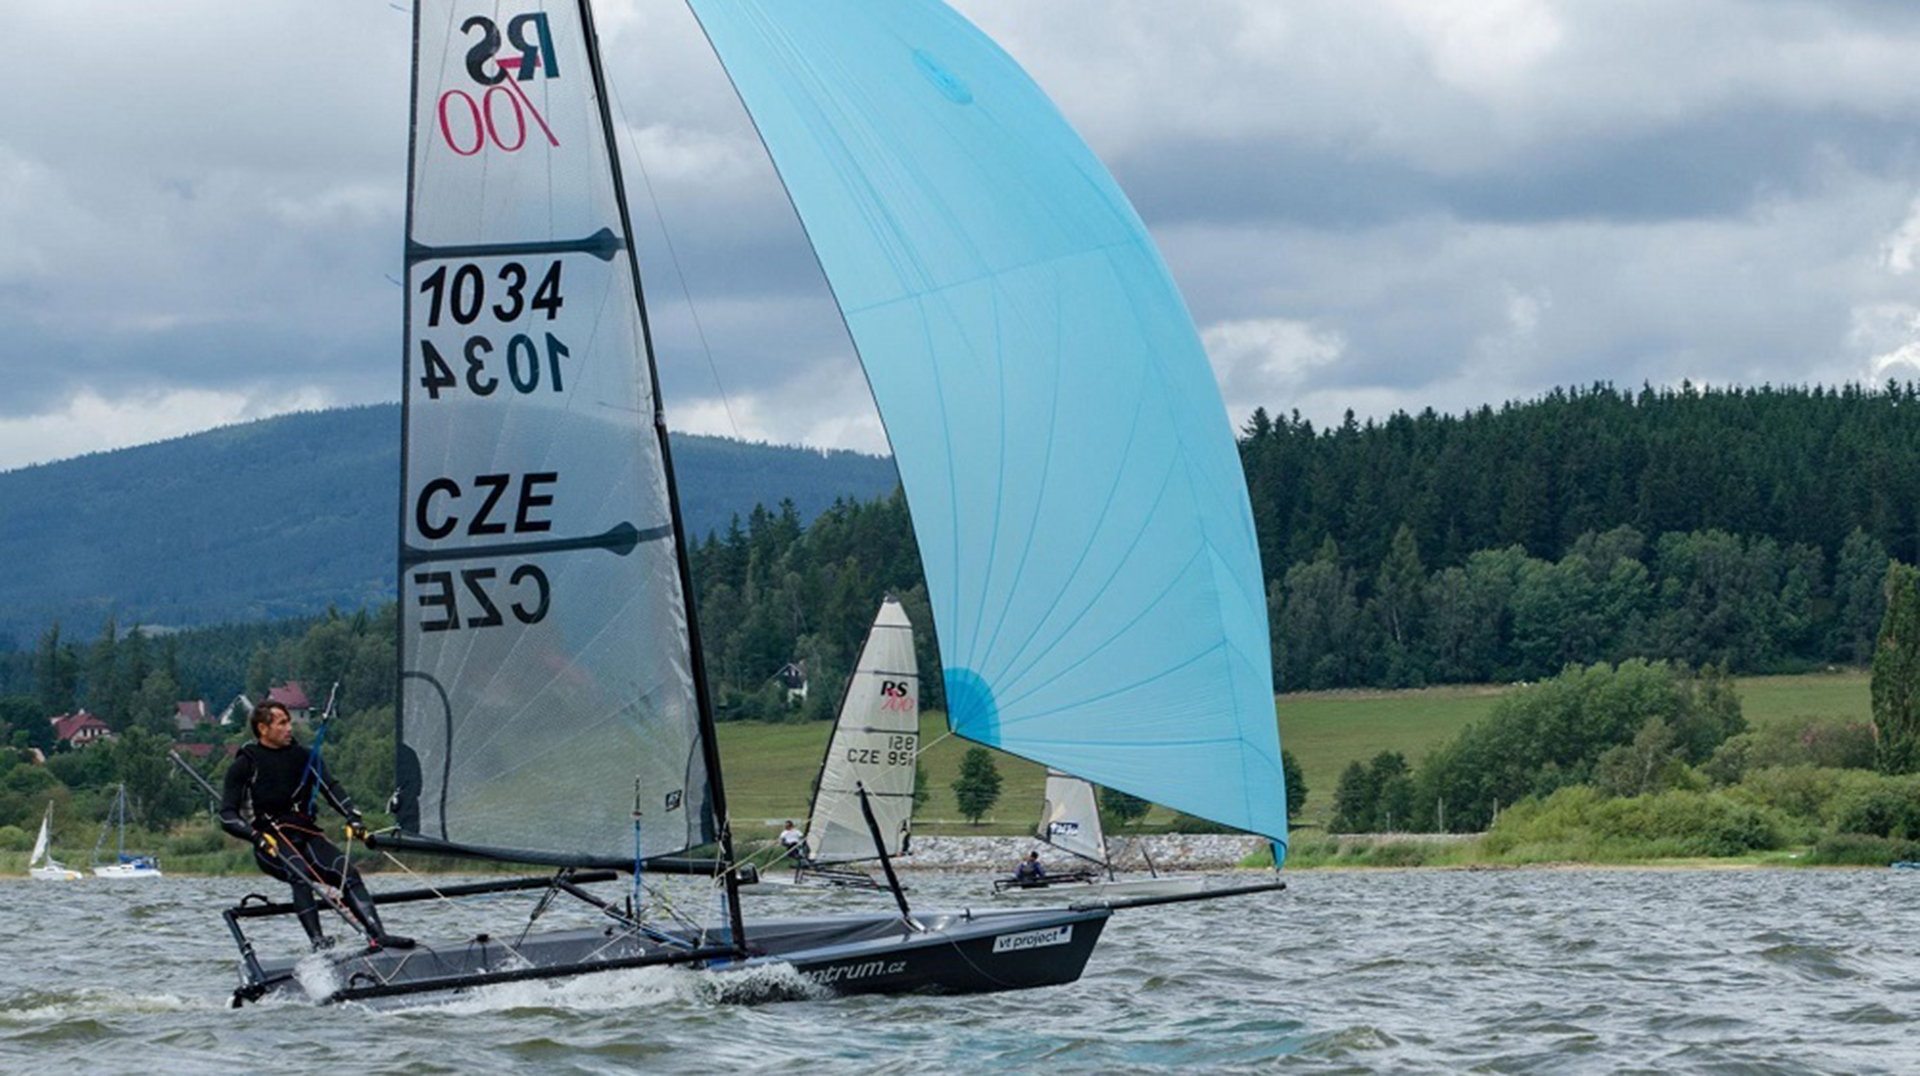 Lake Lipno in the Czech Republic was the spectacular venue for the 2017 RS700 European Championship.